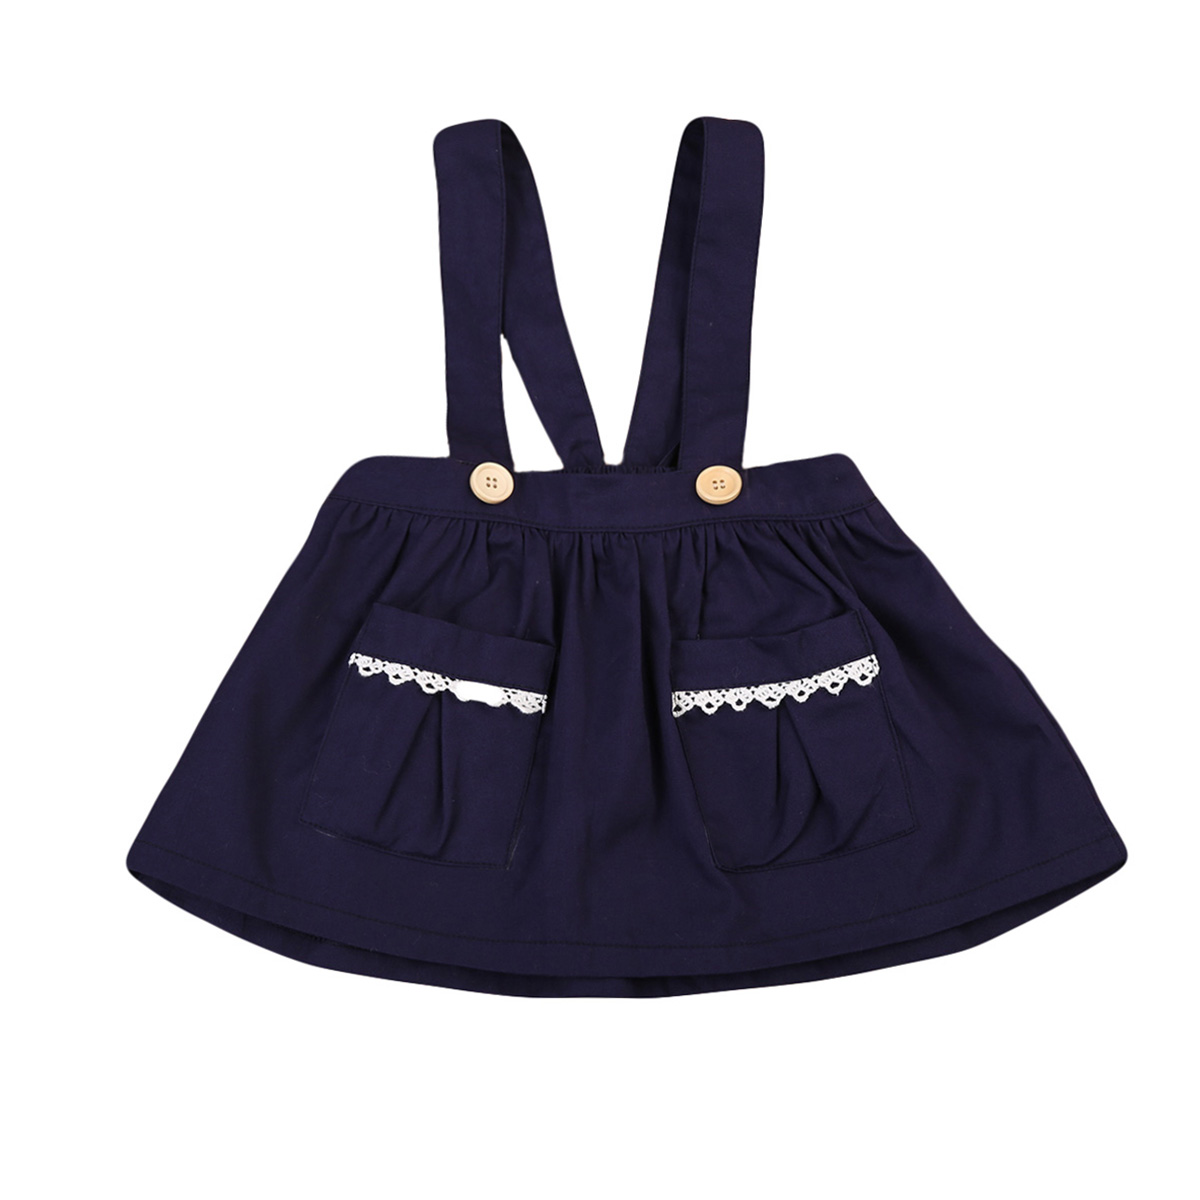 Cute Baby Girls Overall Skirt 2017 Summer Toddler Kids Brace Skirts Party Tutu Pageant Skirts